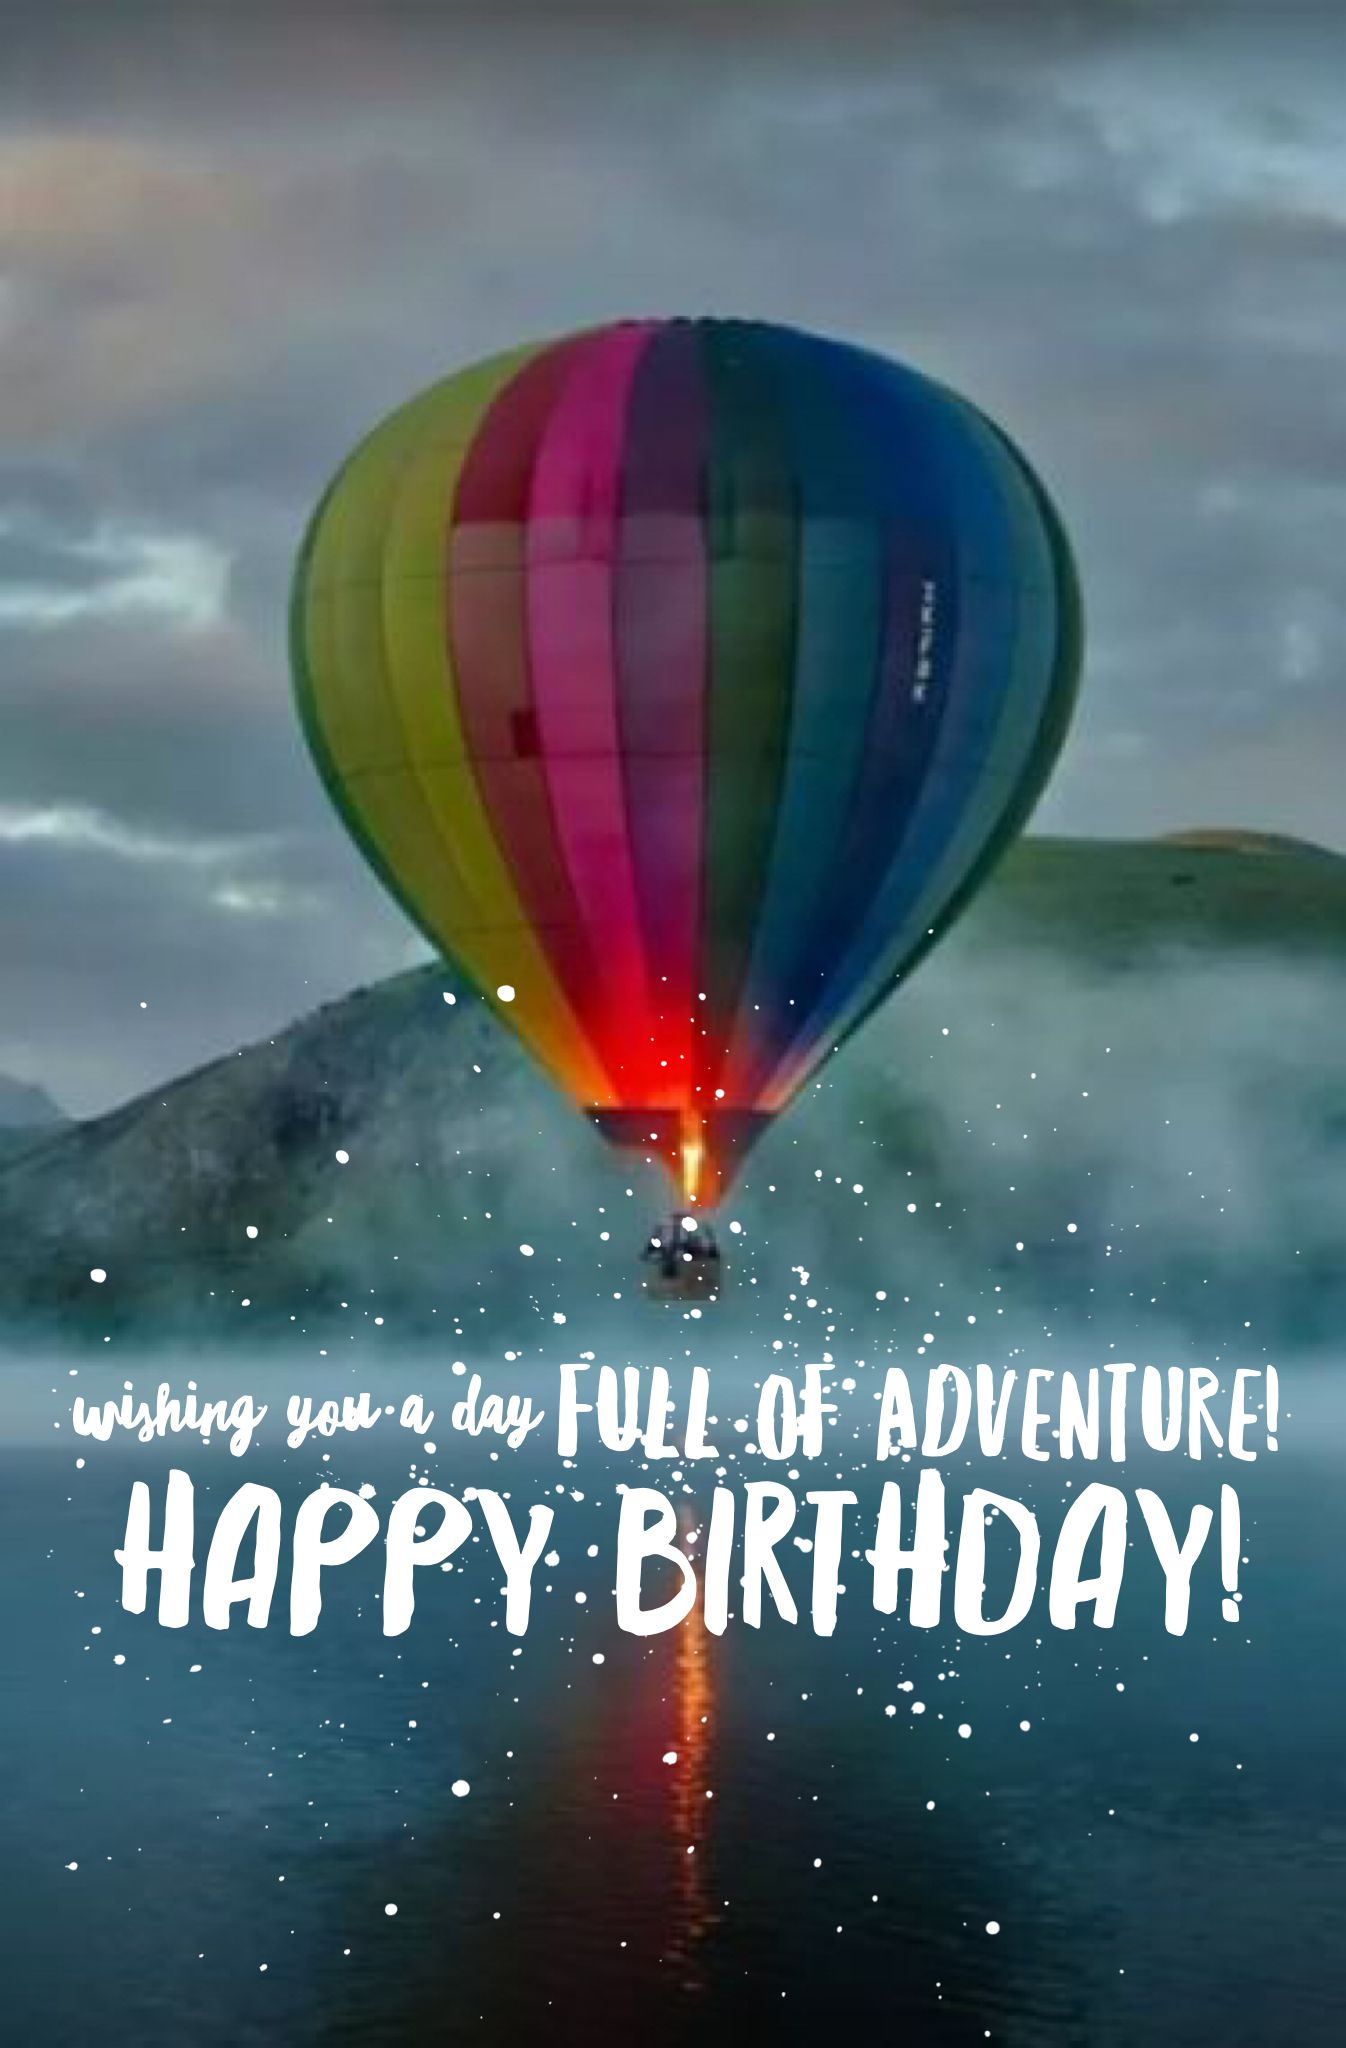 Wishing You A Day Full Of Adventure Happy Birthday Happy Birthday Greetings Friends Best Happy Birthday Quotes Wish You Happy Birthday